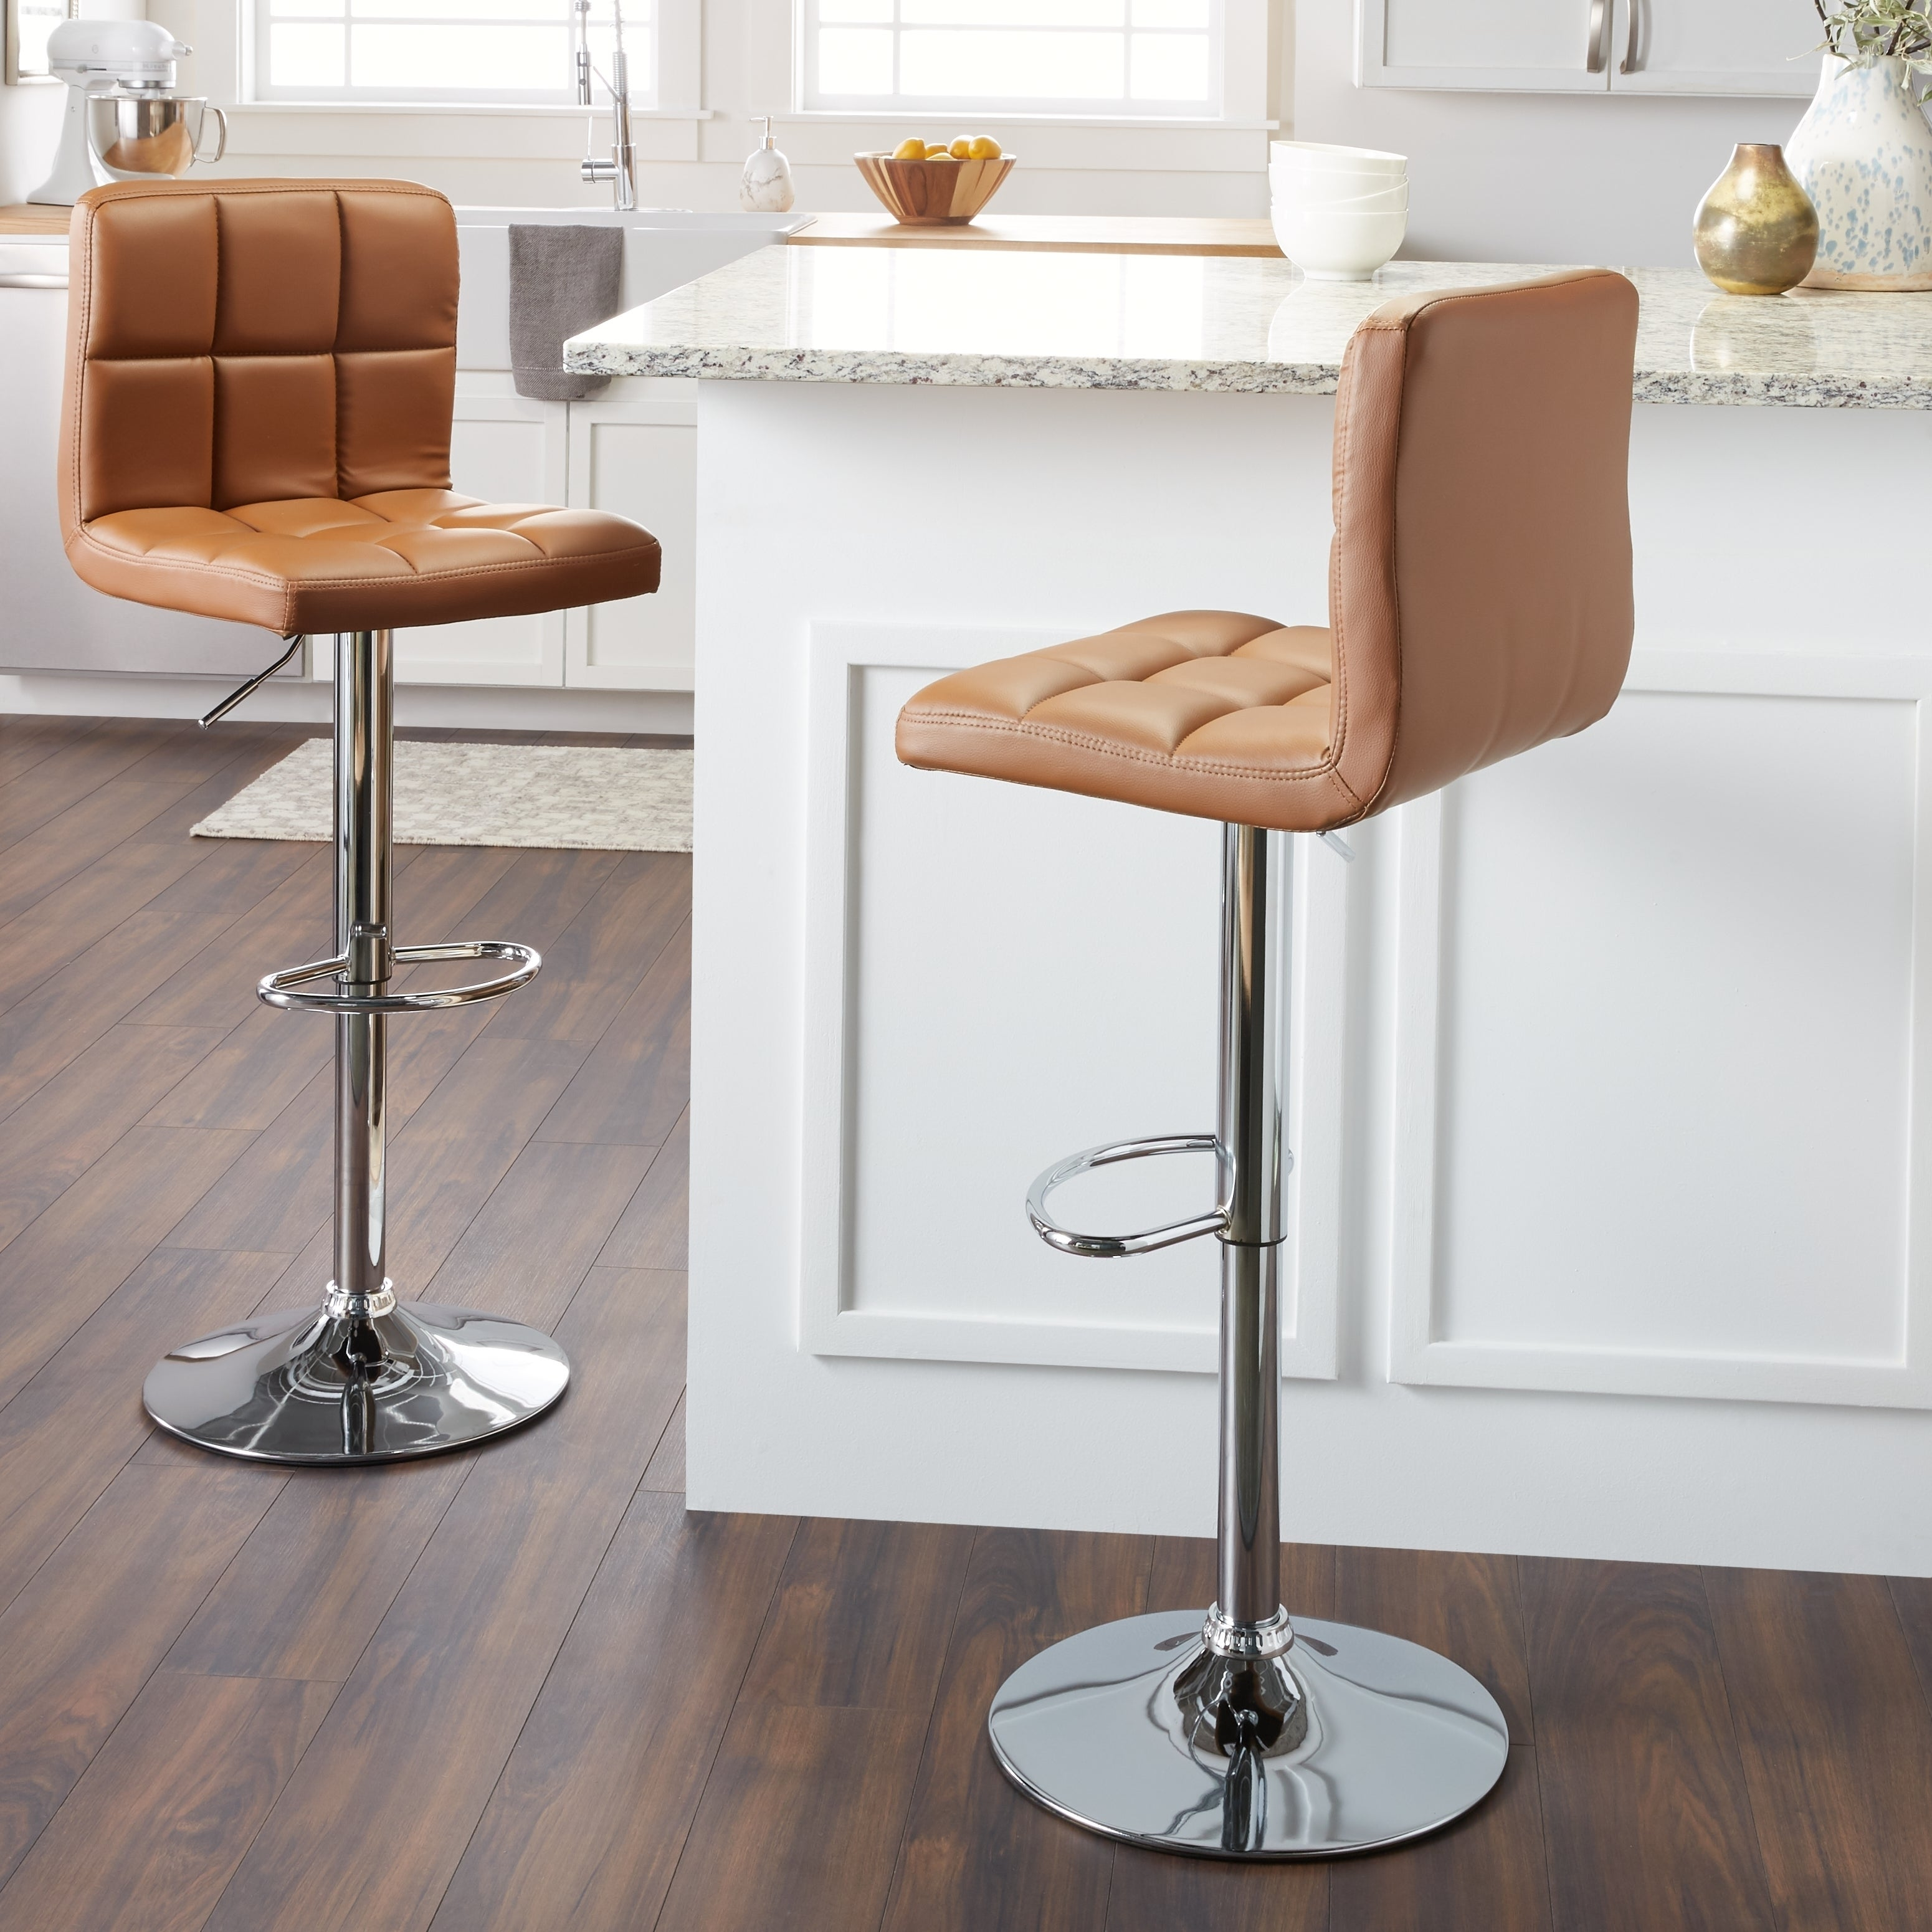 Shop clay alder home galena chrome and faux leather height adjustable barstools set of 2 on sale free shipping today overstock com 20255007